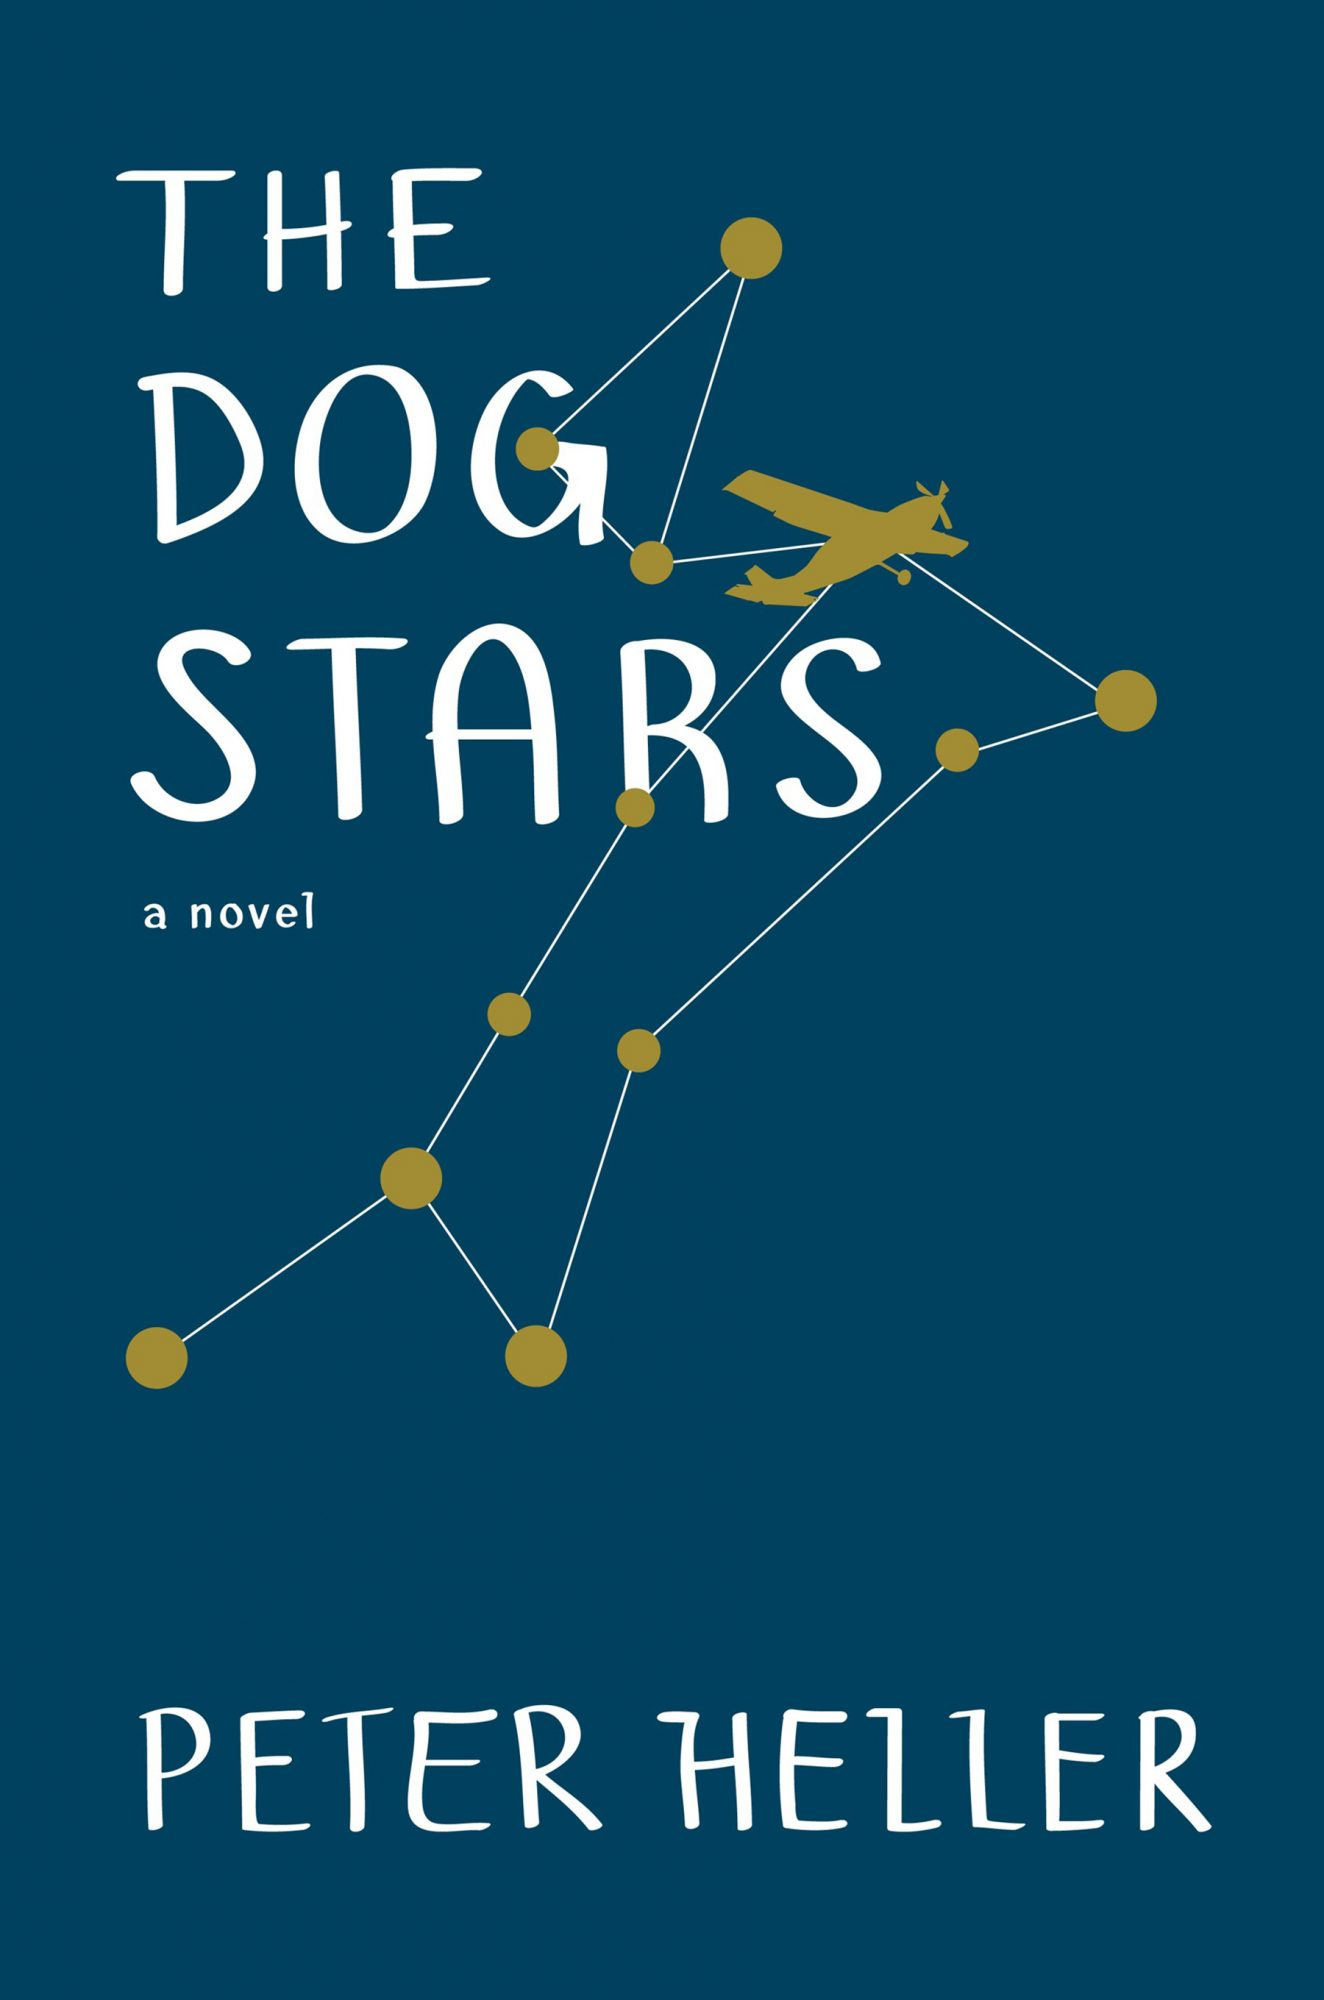 The Dog Stars (8/7/12)by Peter Heller